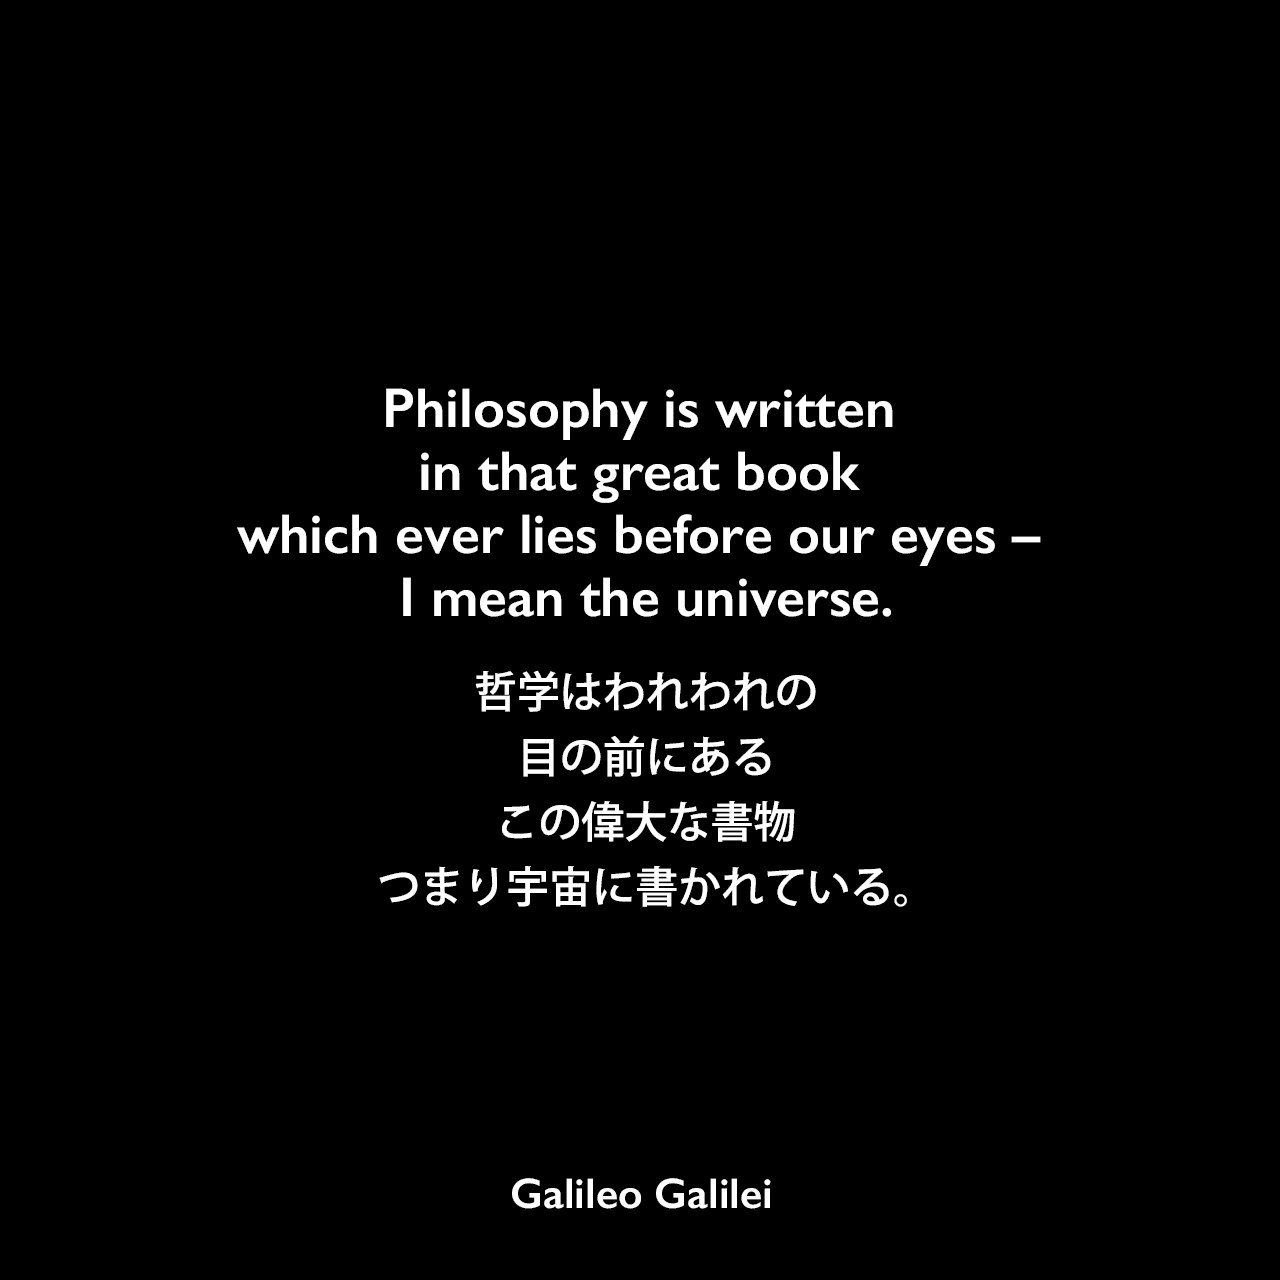 Philosophy is written in that great book which ever lies before our eyes – I mean the universe.哲学はわれわれの目の前にあるこの偉大な書物、つまり宇宙に書かれている。- ガリレオ・ガリレイの本「イル・サジアトーレ」よりGalileo Galilei